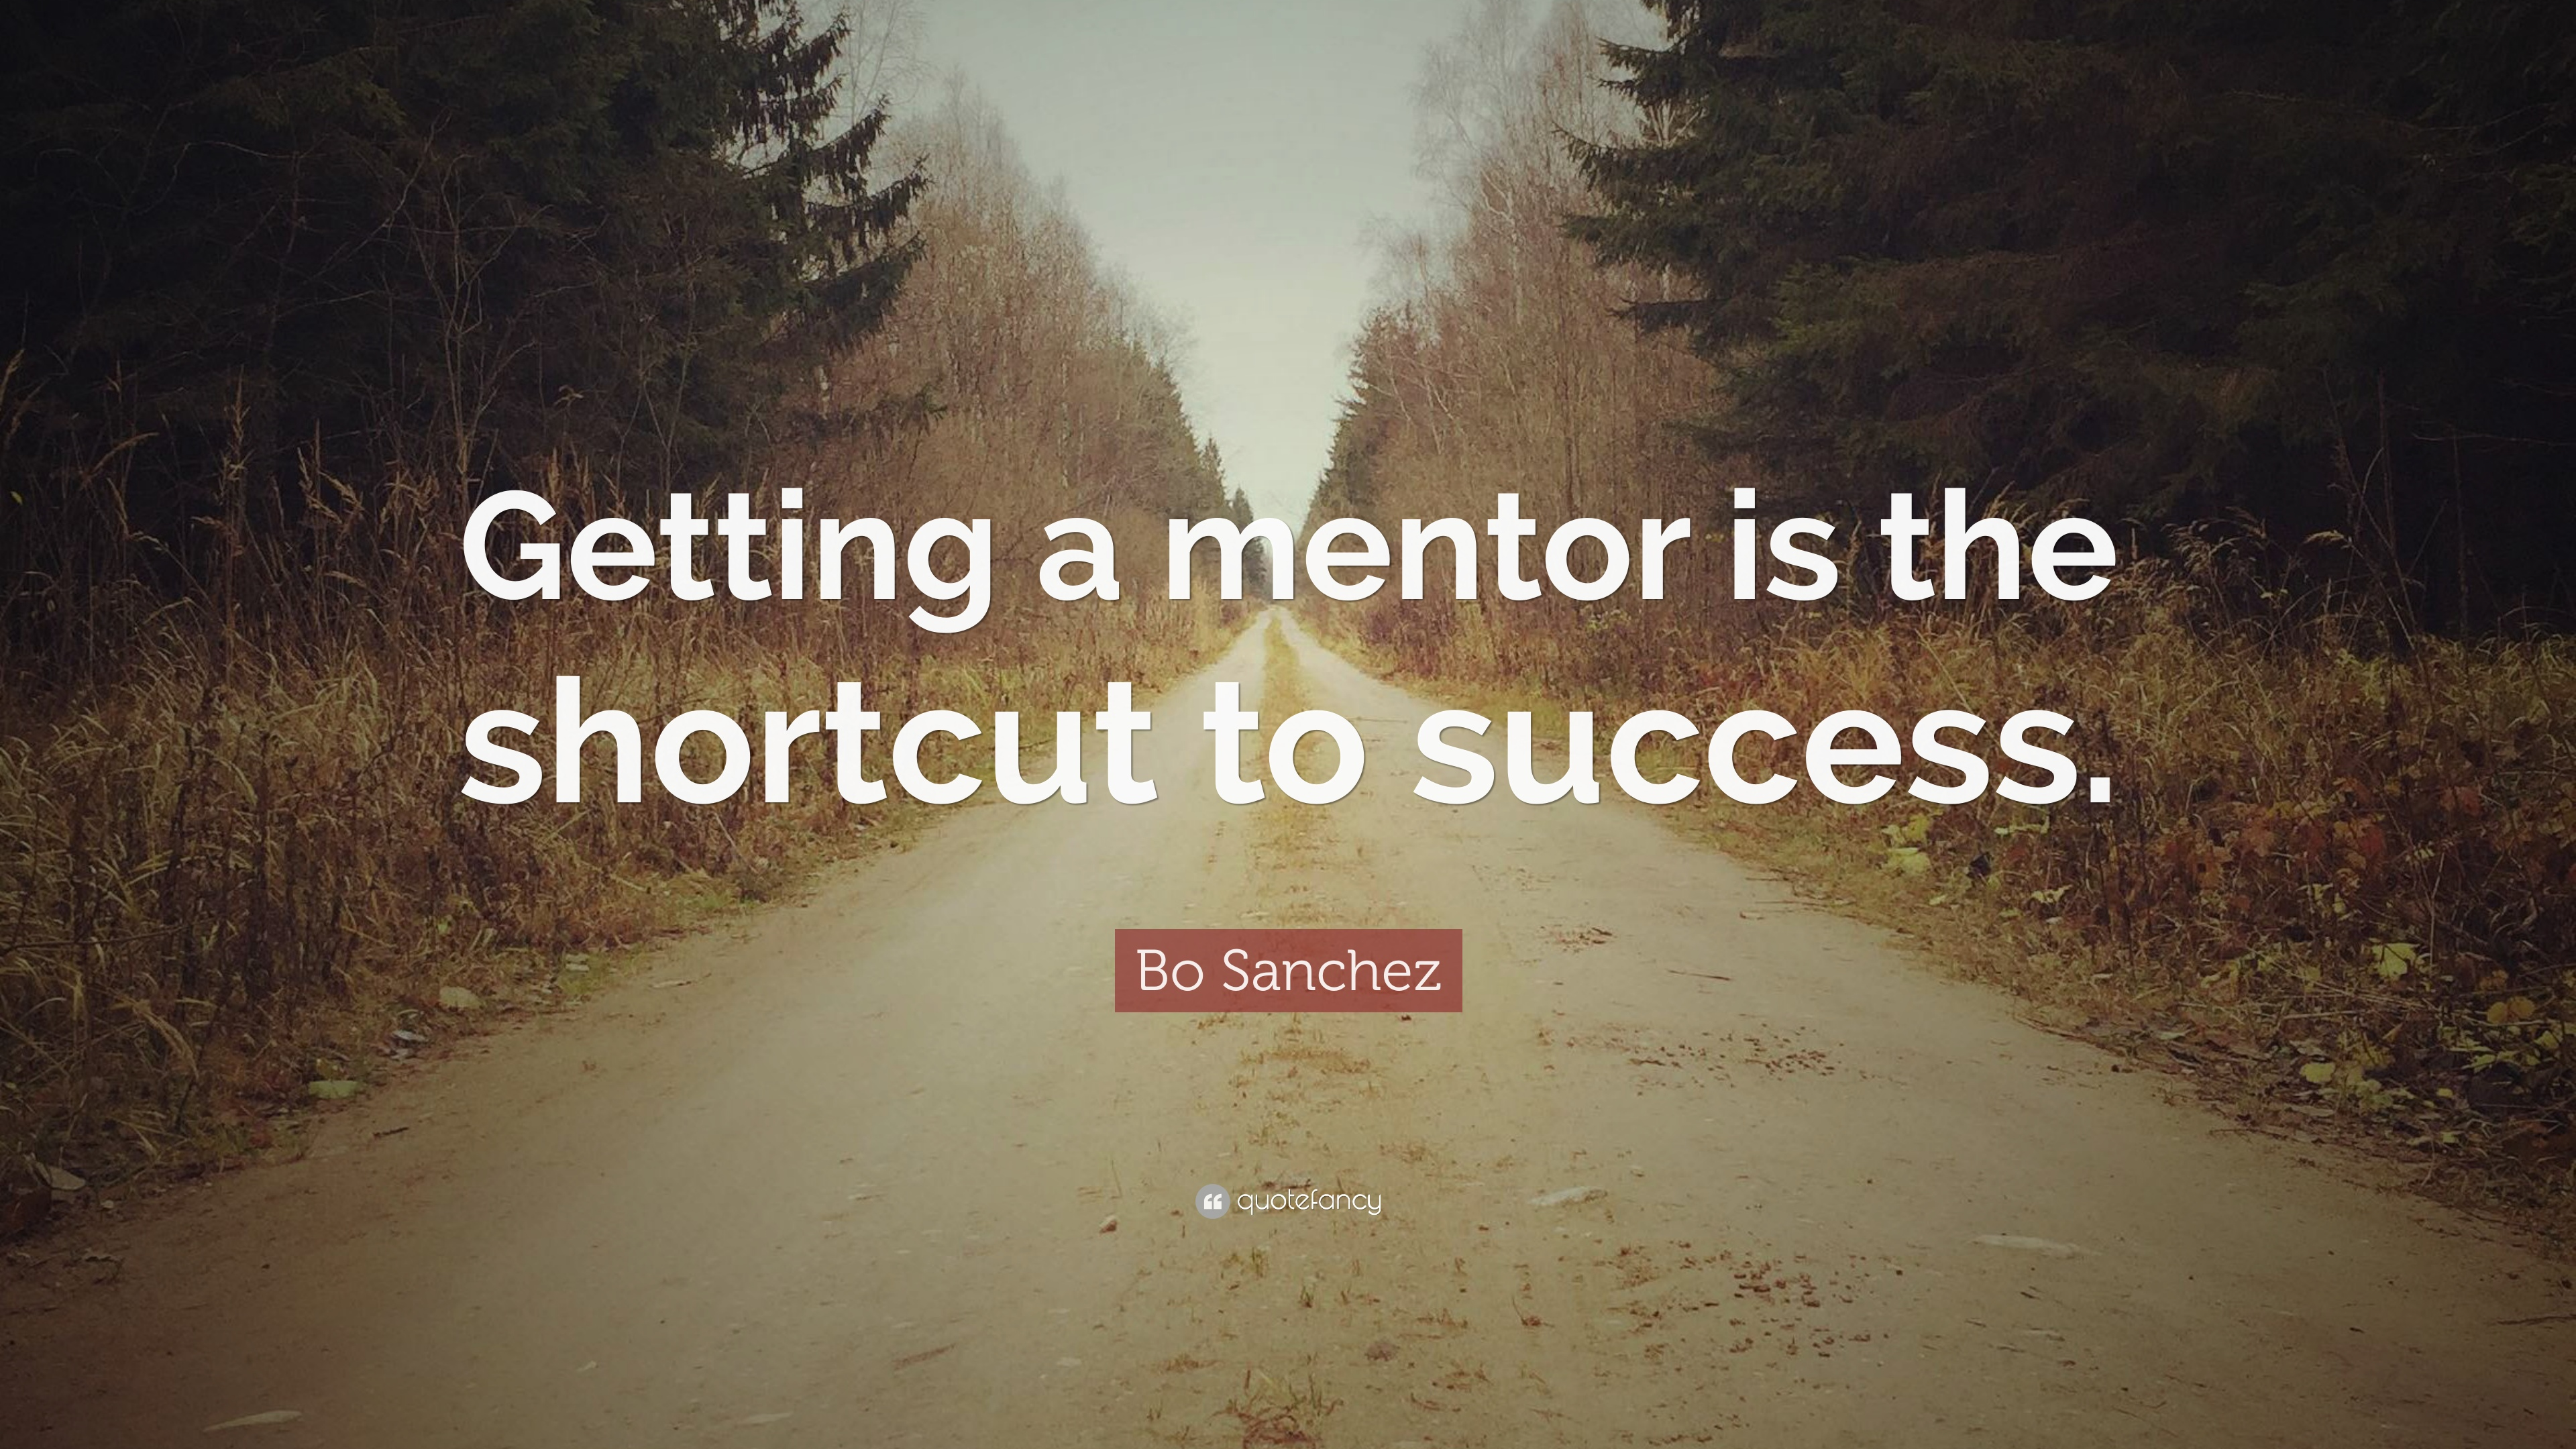 Getting a mentor is the shortcut to success- quote by Bo Sanchez